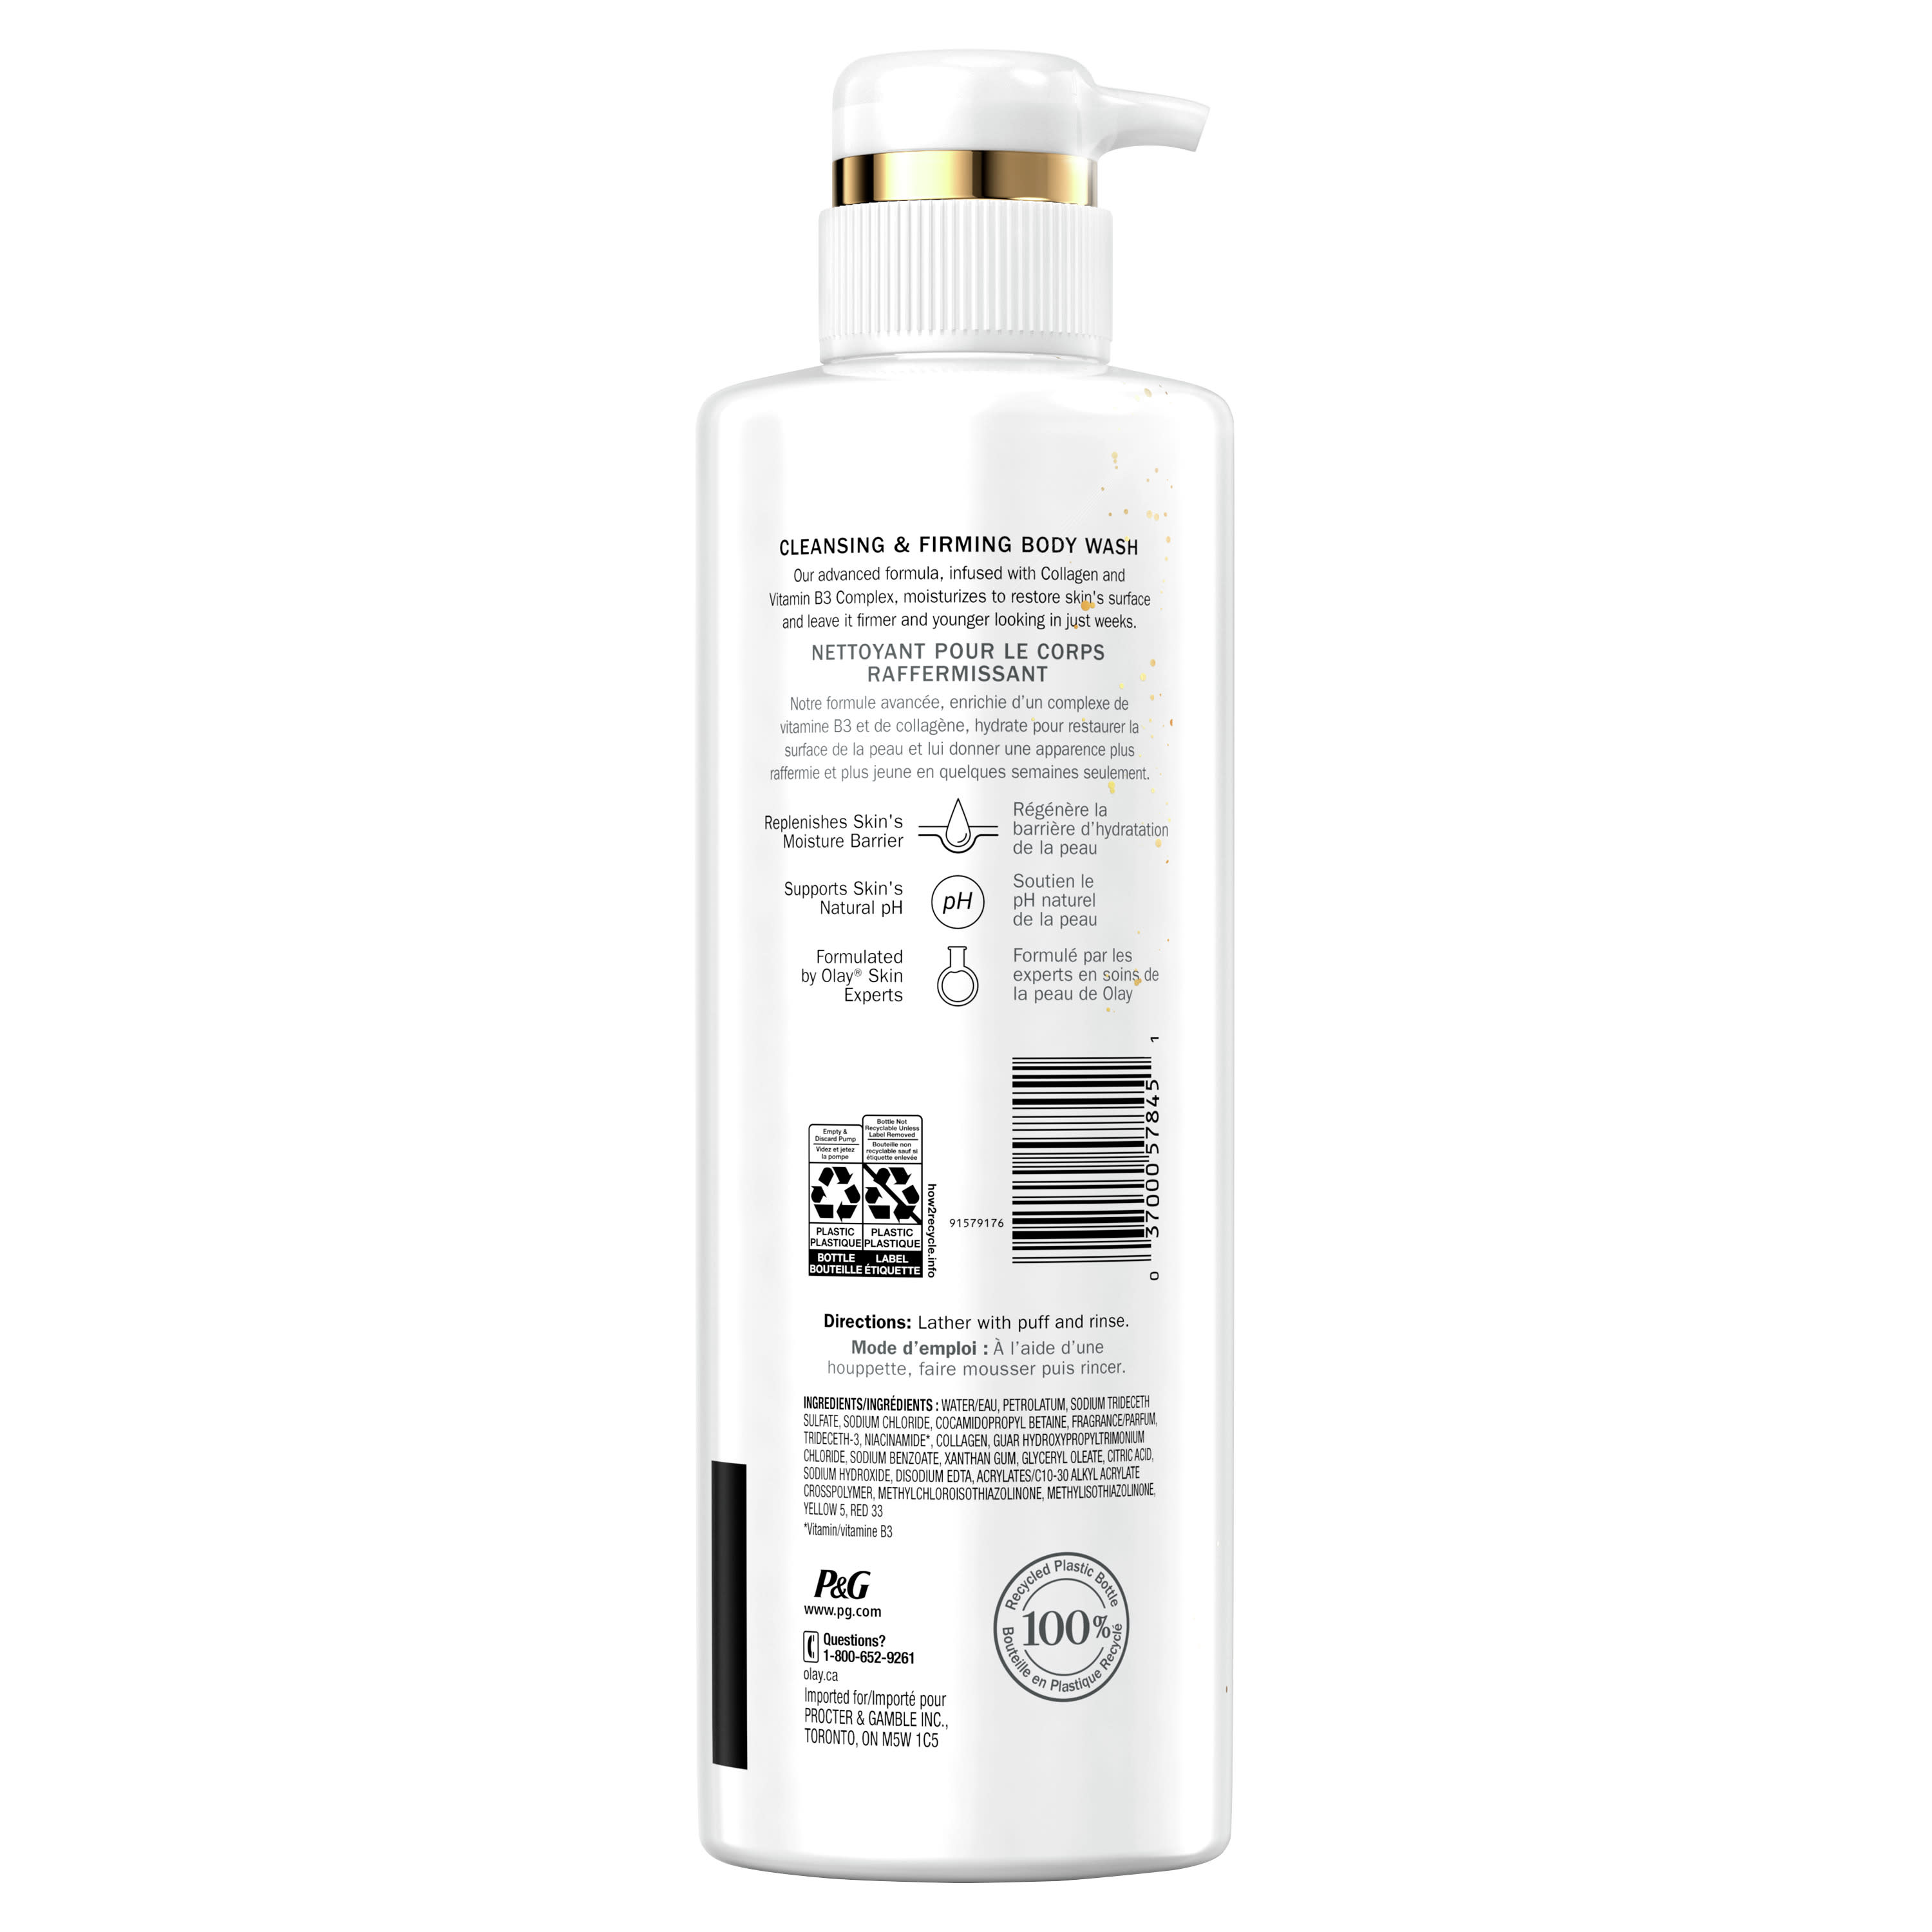 Olay Cleansing & Firming Body Wash with Collagen and Vitamin B3